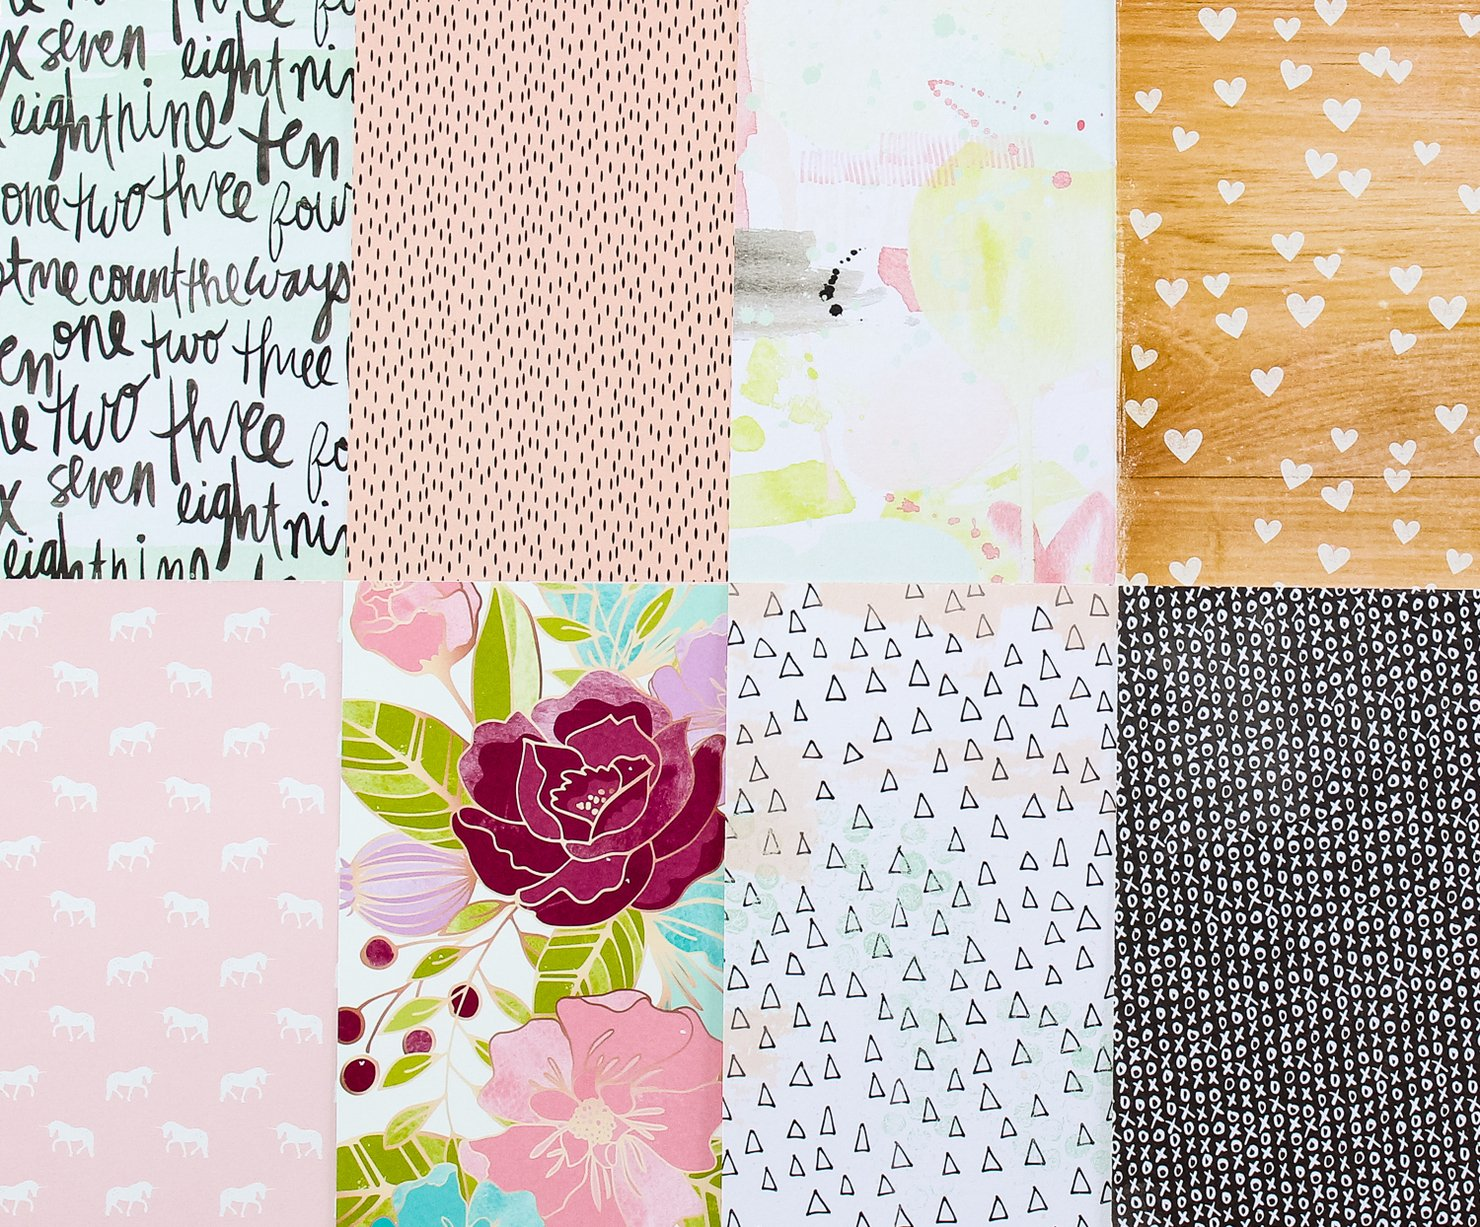 Picture 1 of Add-on Patterned Paper - February 2015